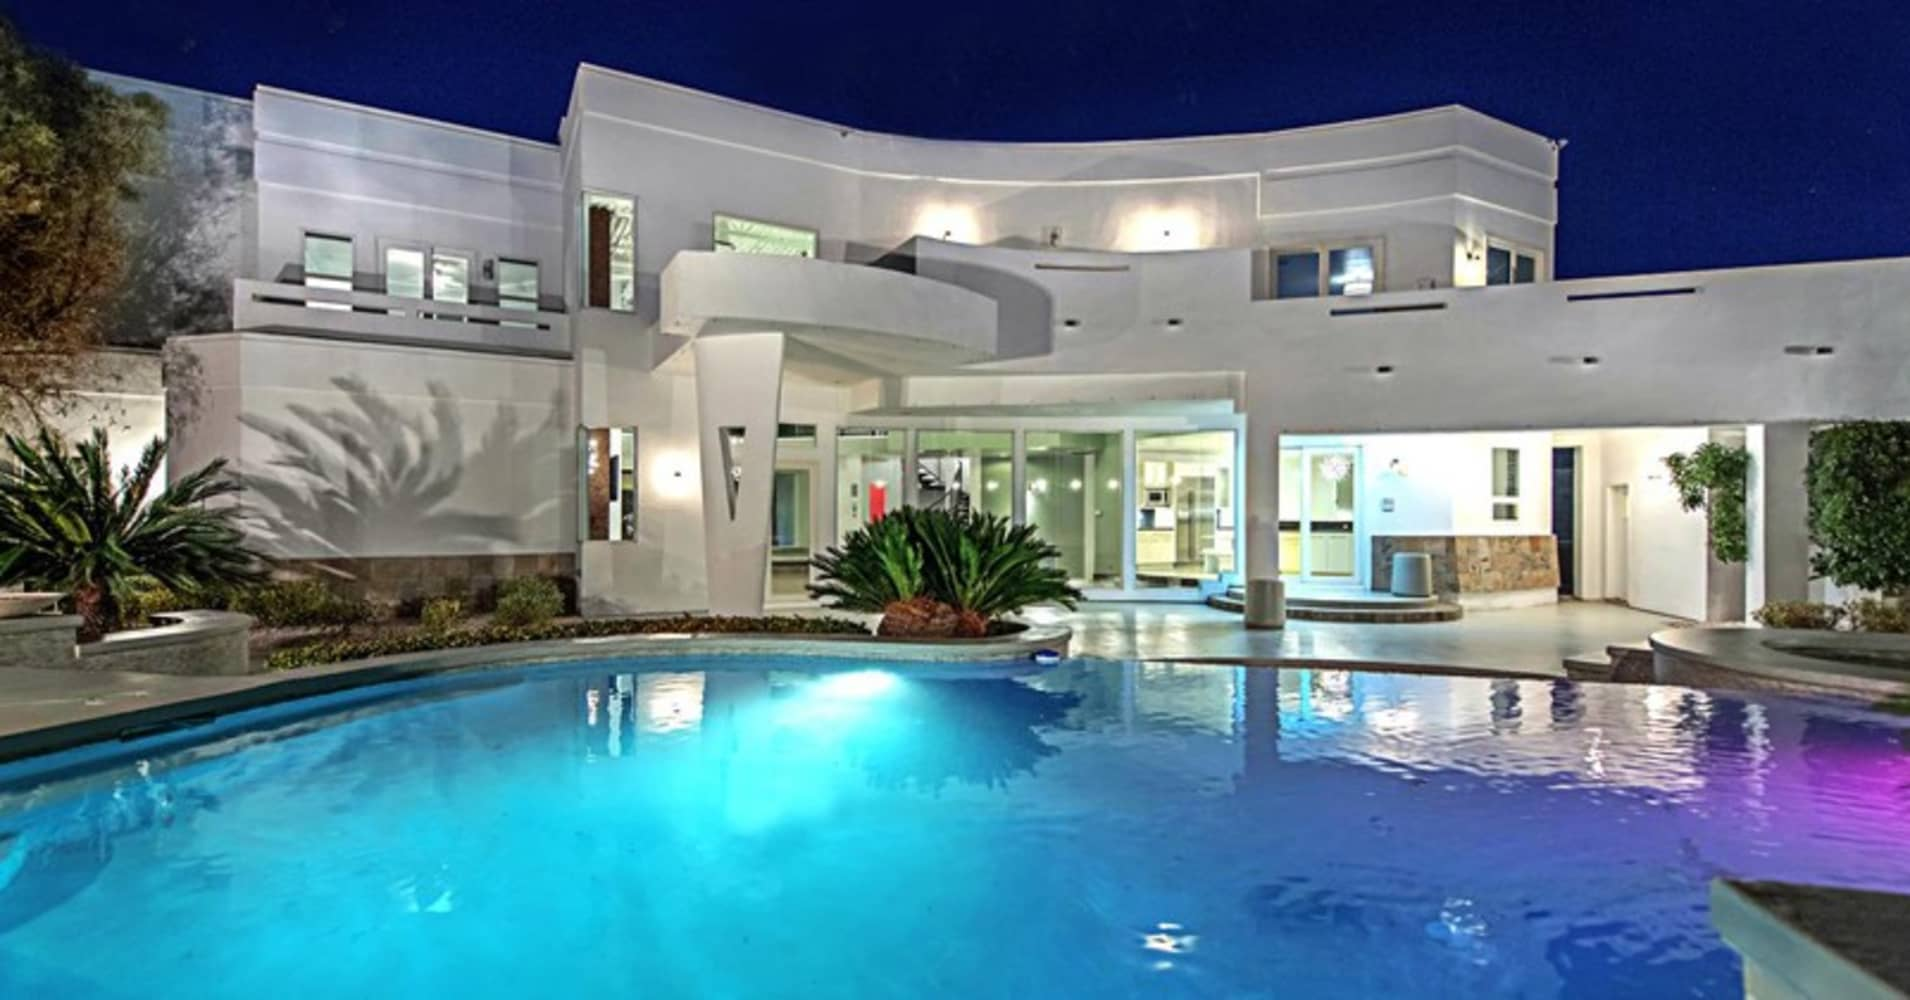 Mike Tyson S Las Vegas Mansion On Sale For 1 5 Million